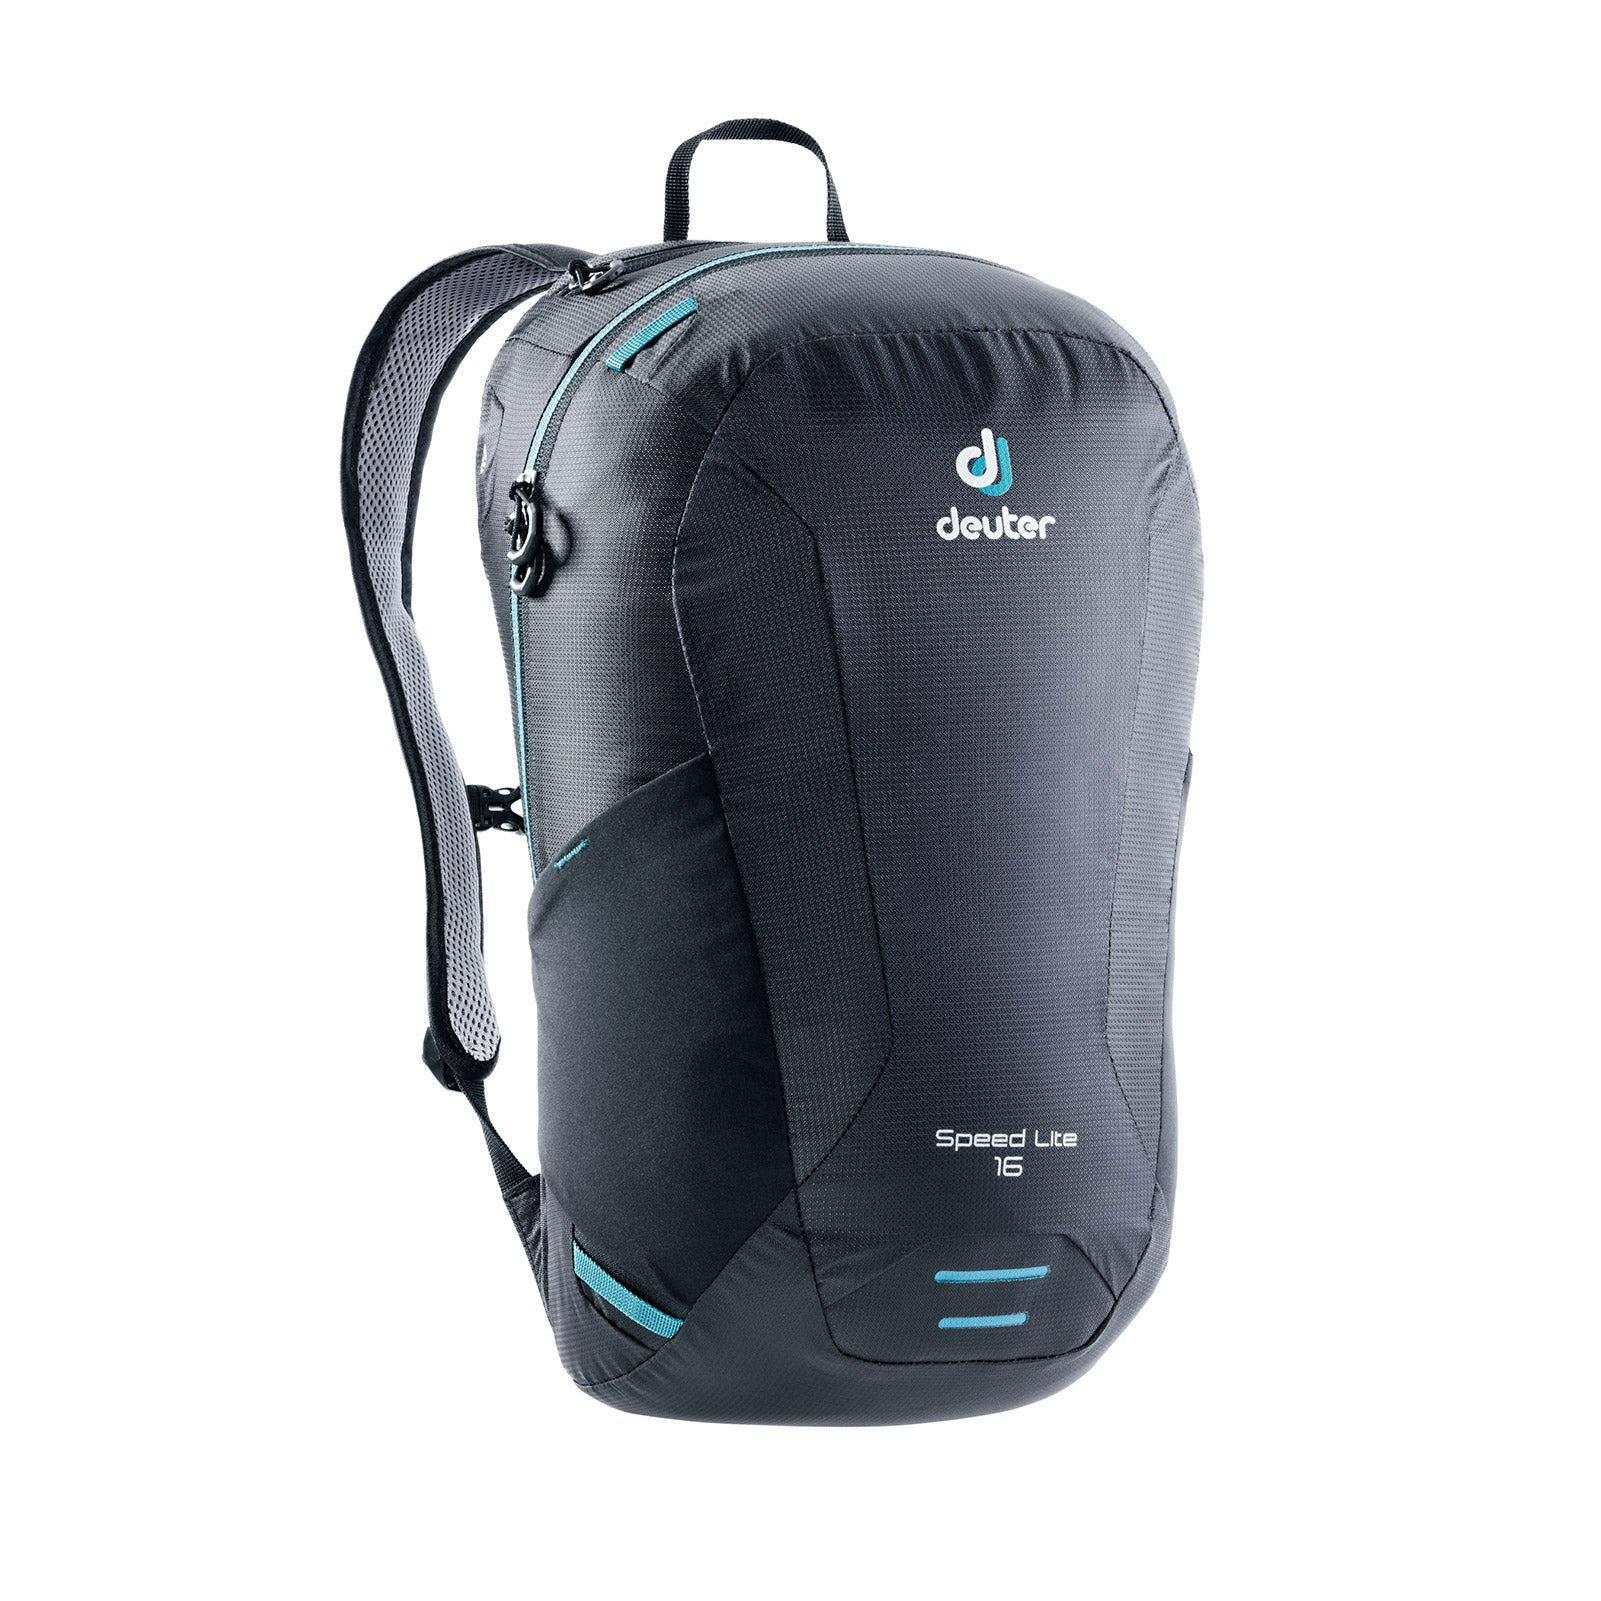 deuter speedlite 16 day pack front view in color dark grey with blue details